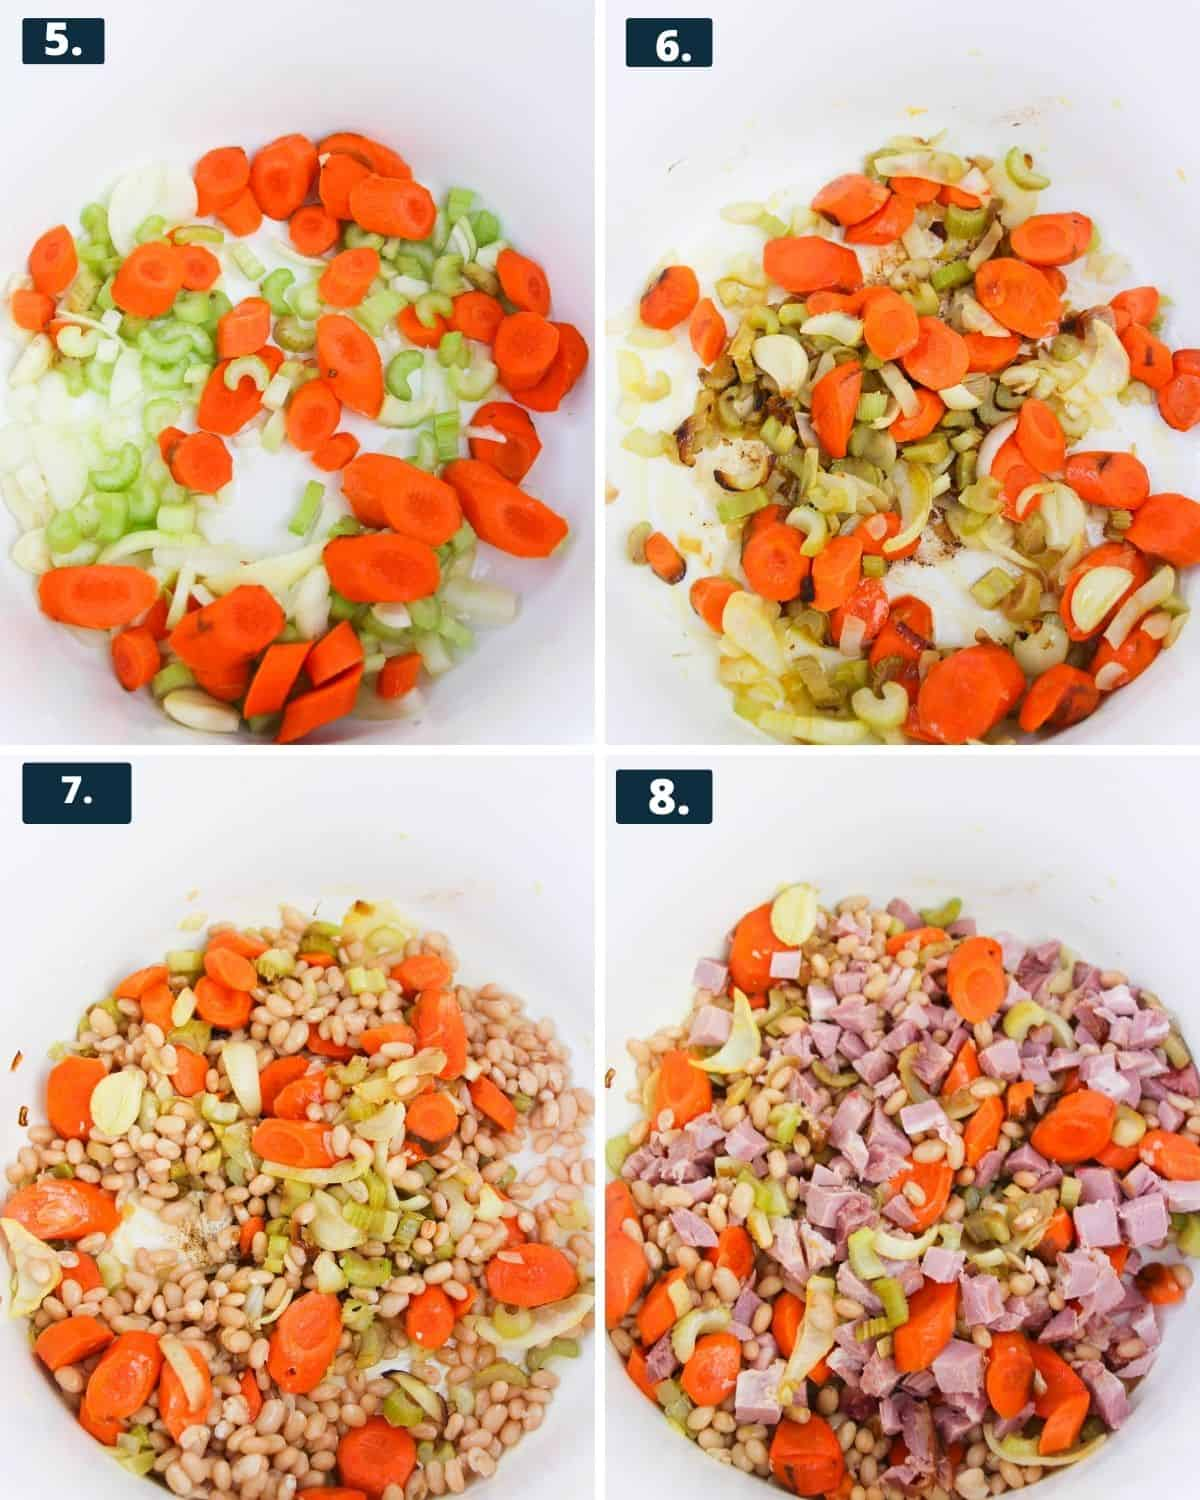 4 photos,1 diced carrots and celery in a pot. 2nd photo, same veggies sauteed in the pot. 3rd photo, adding the beans into the veggies. 4th photo, ham is added into the veggies and beans.